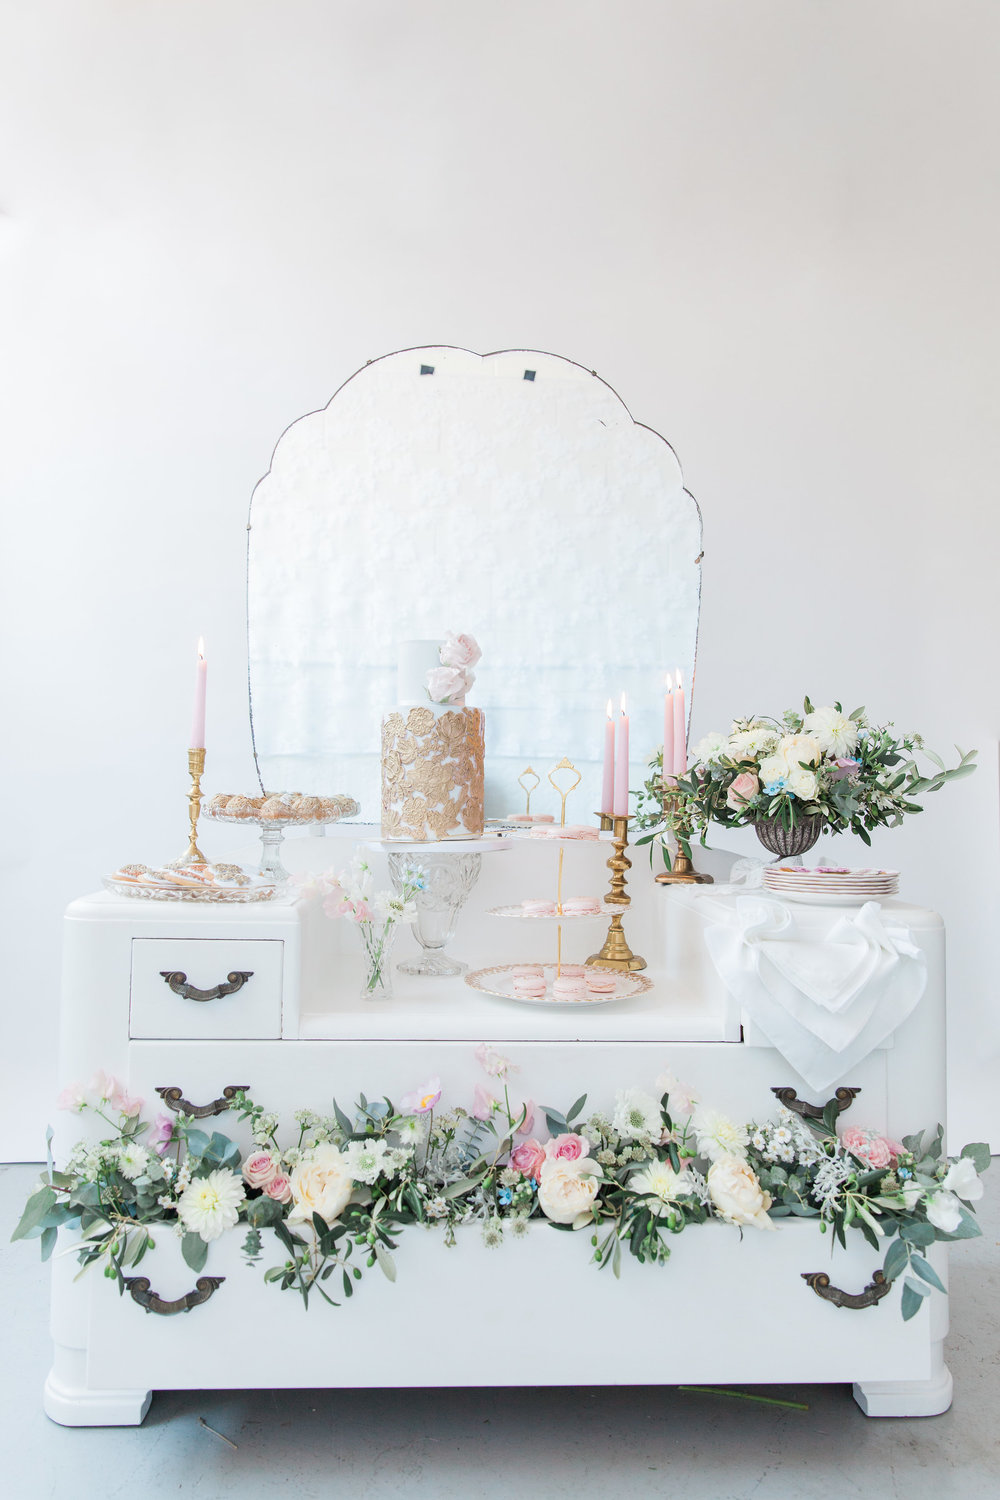 Photography:  Maxeen Kim  | Cakes & Desserts:  MonAnnie Cakes | Flowers:  Petal HQ  | Styling: Me